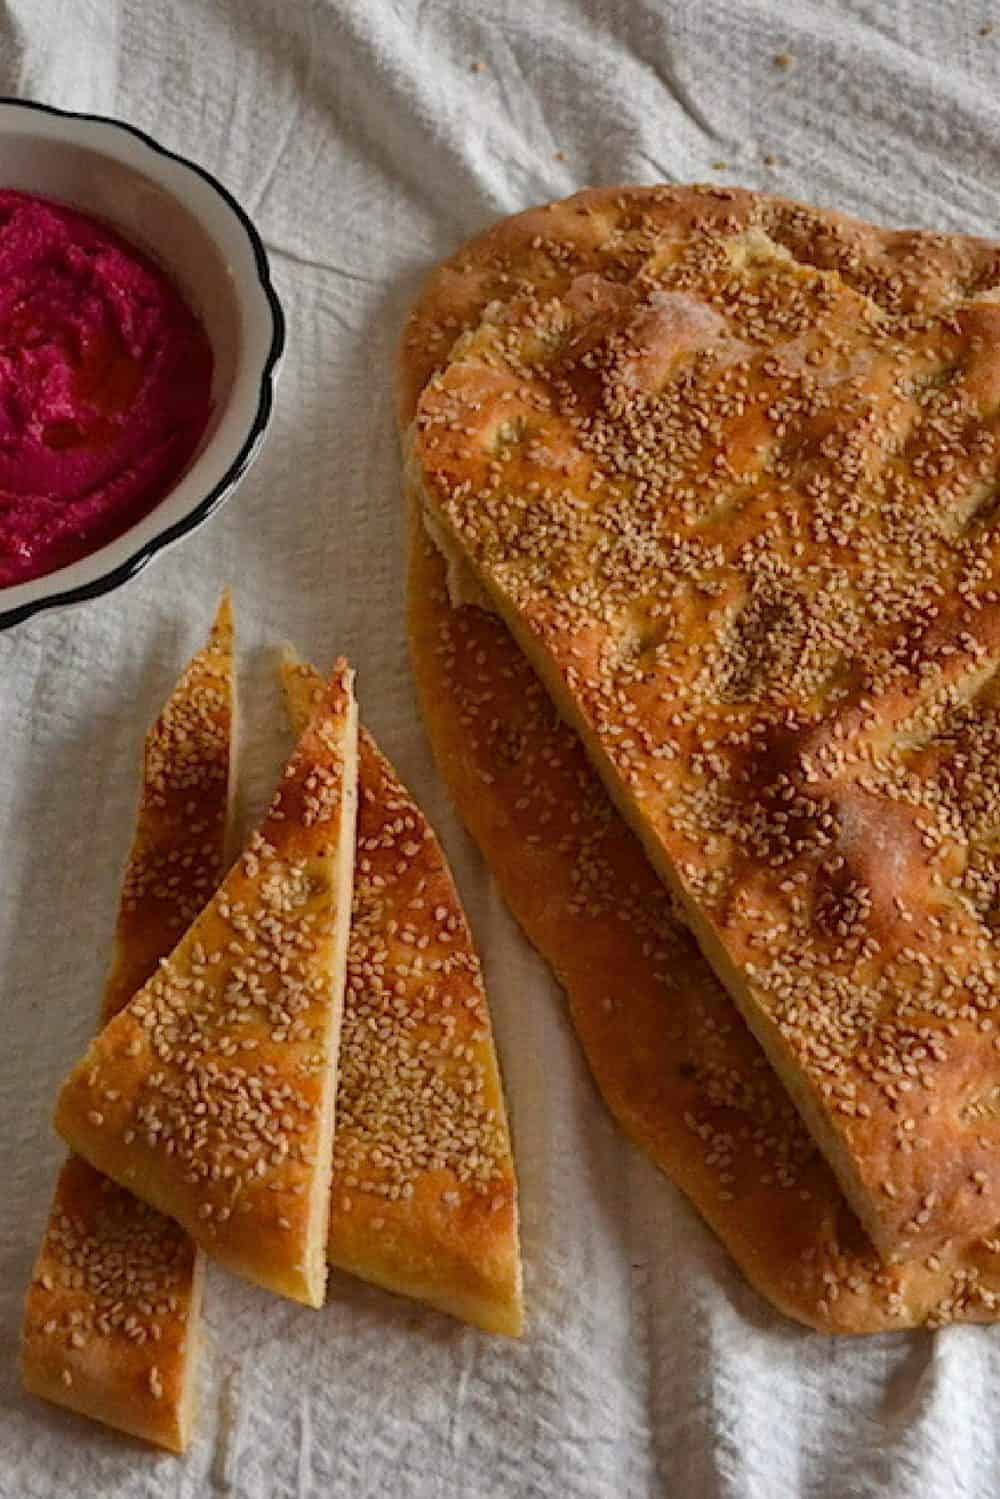 Greek Bread slices with beetroot hummus